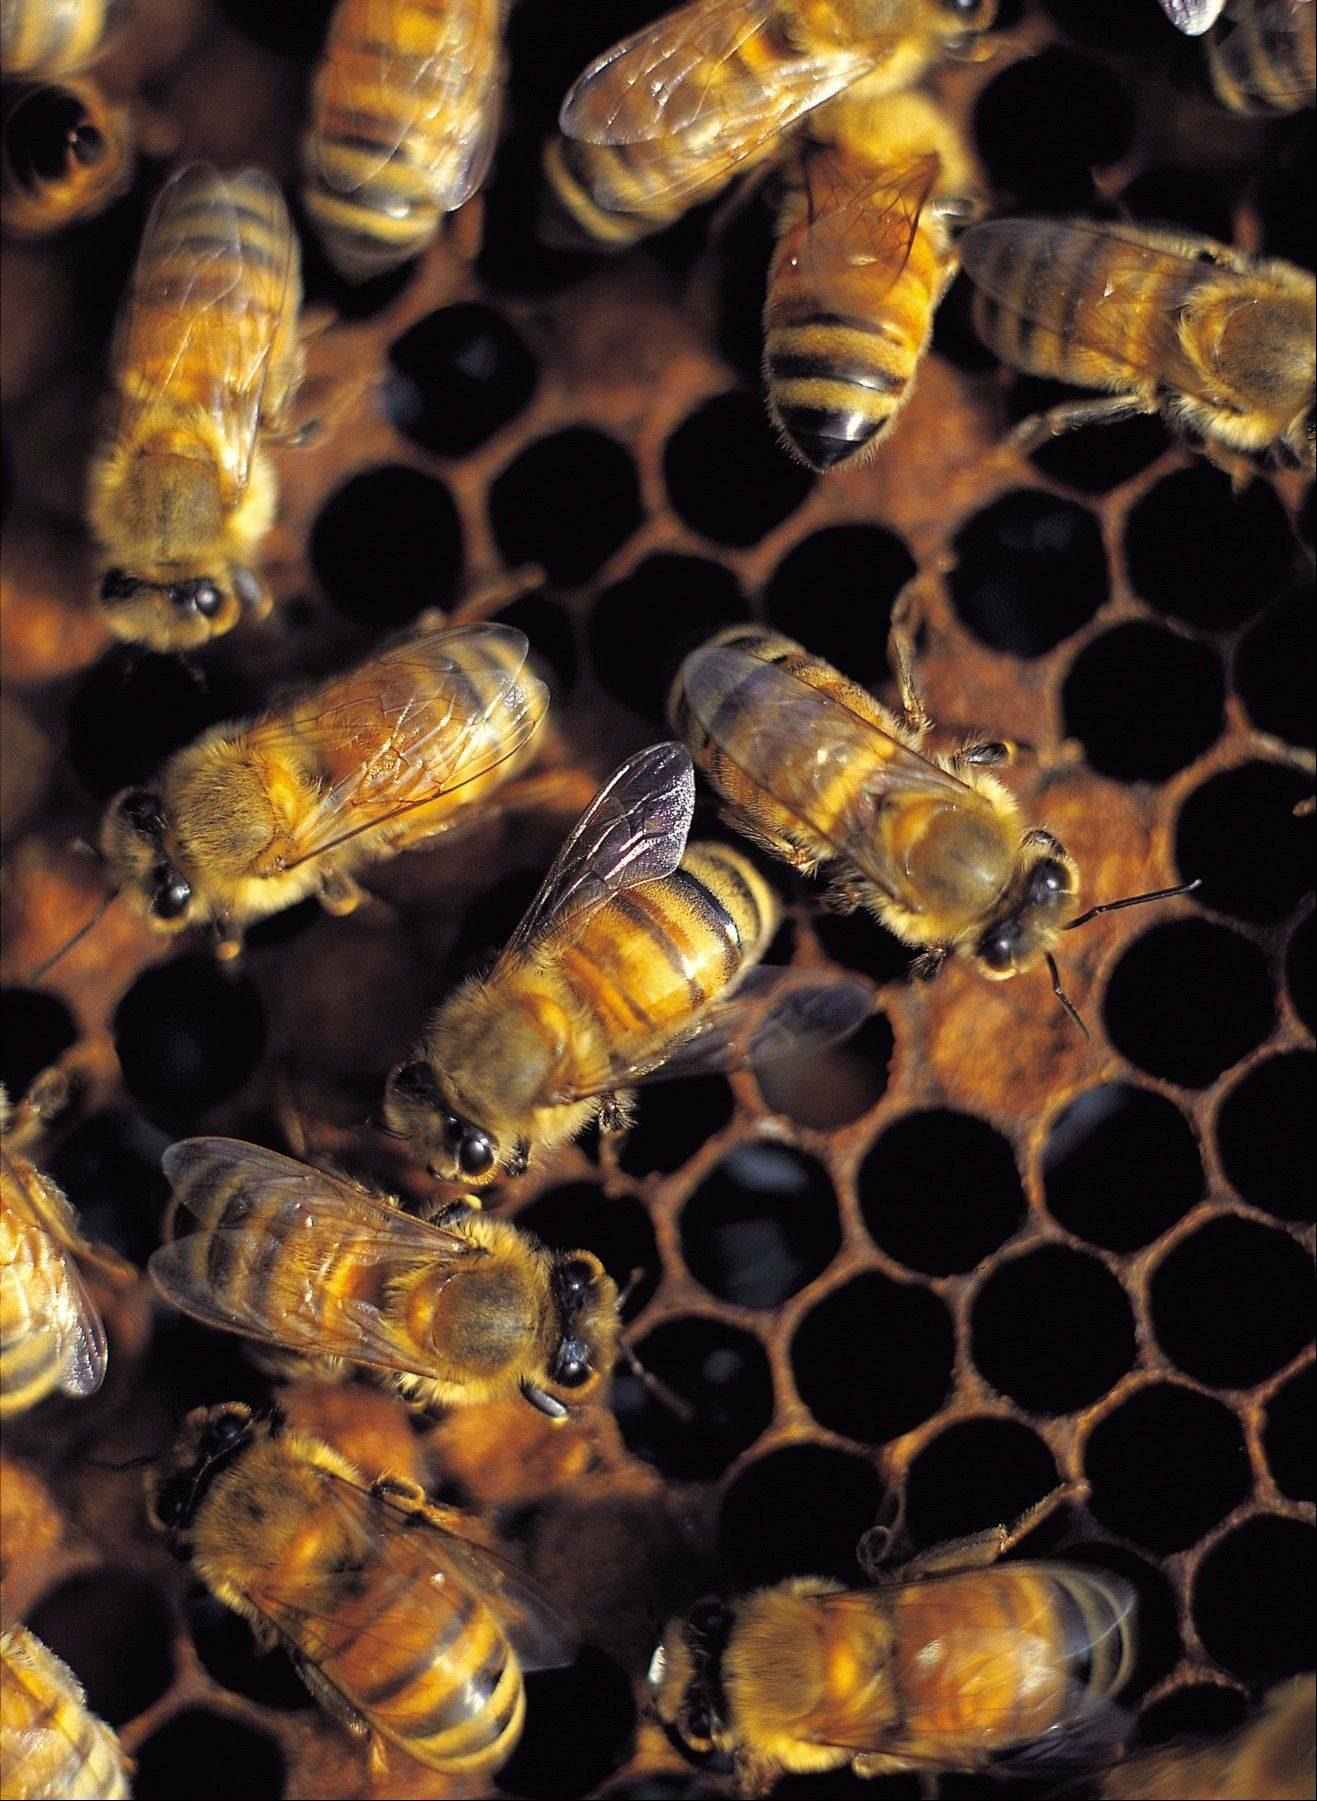 West Dundee to let expert weigh in on honeybees